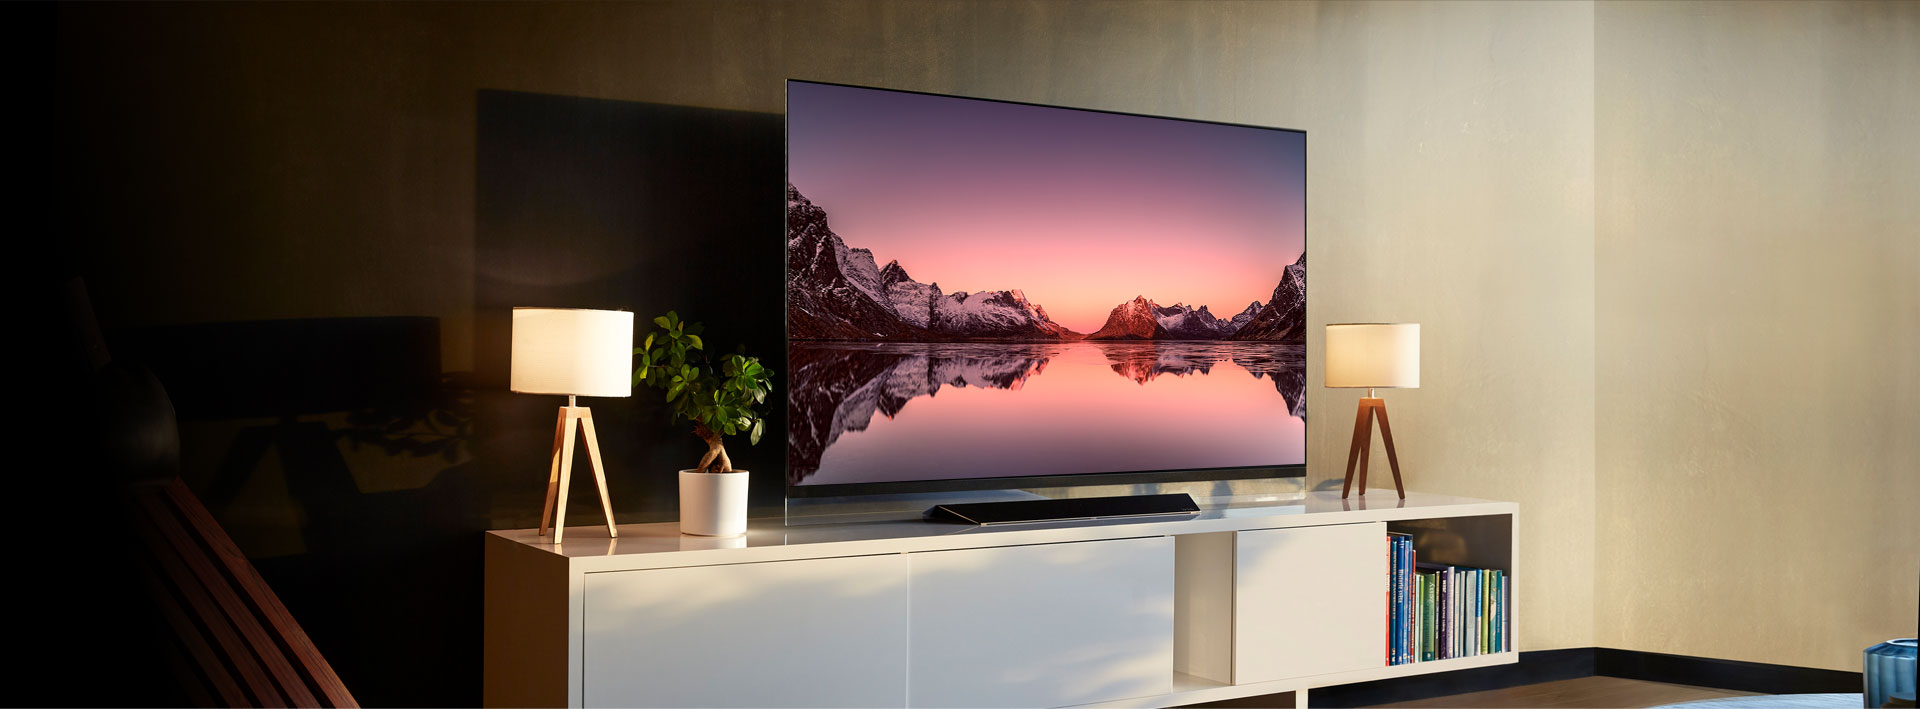 LG's ThinQ Continues to Push the Boundaries of the TV Viewing Experience